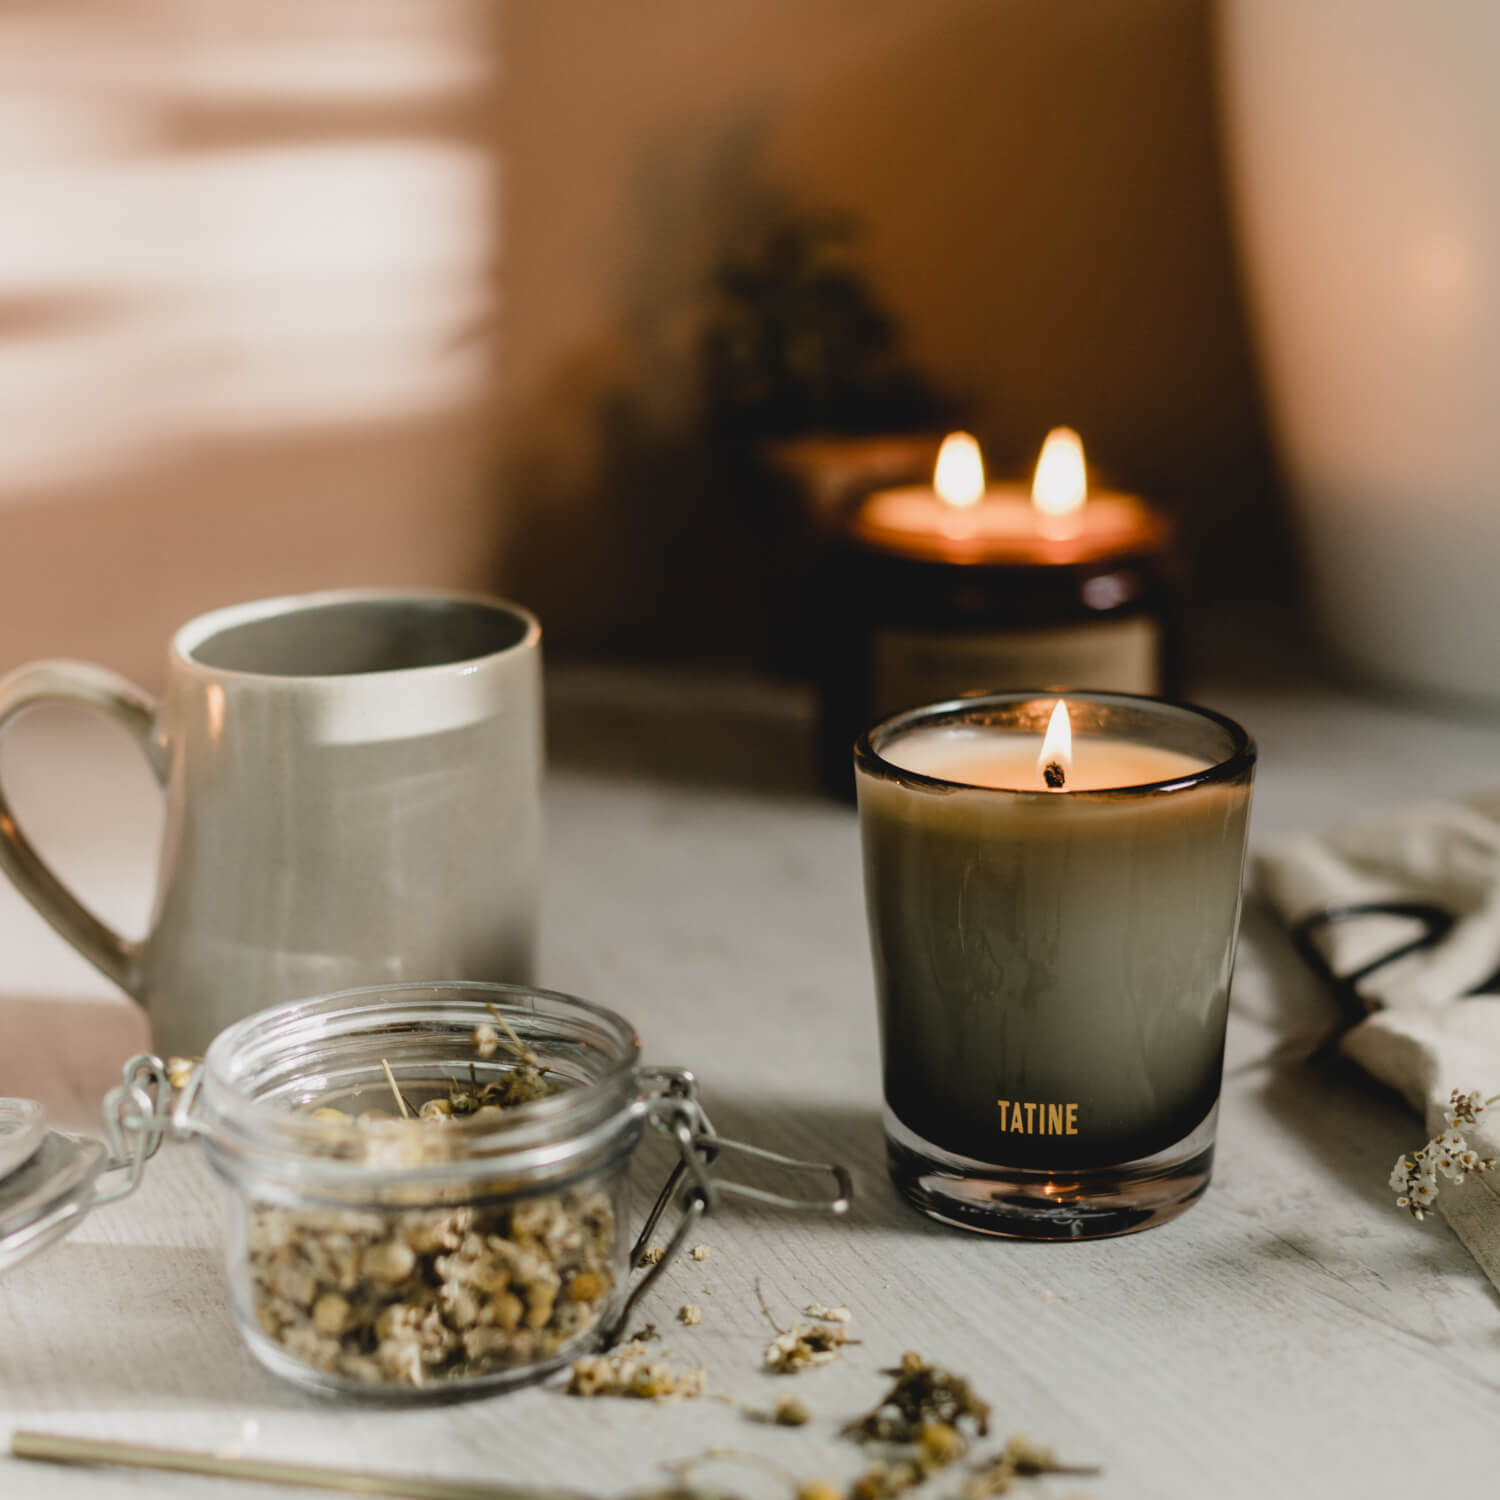 Temple of Leaves Scented Candle by Tatine